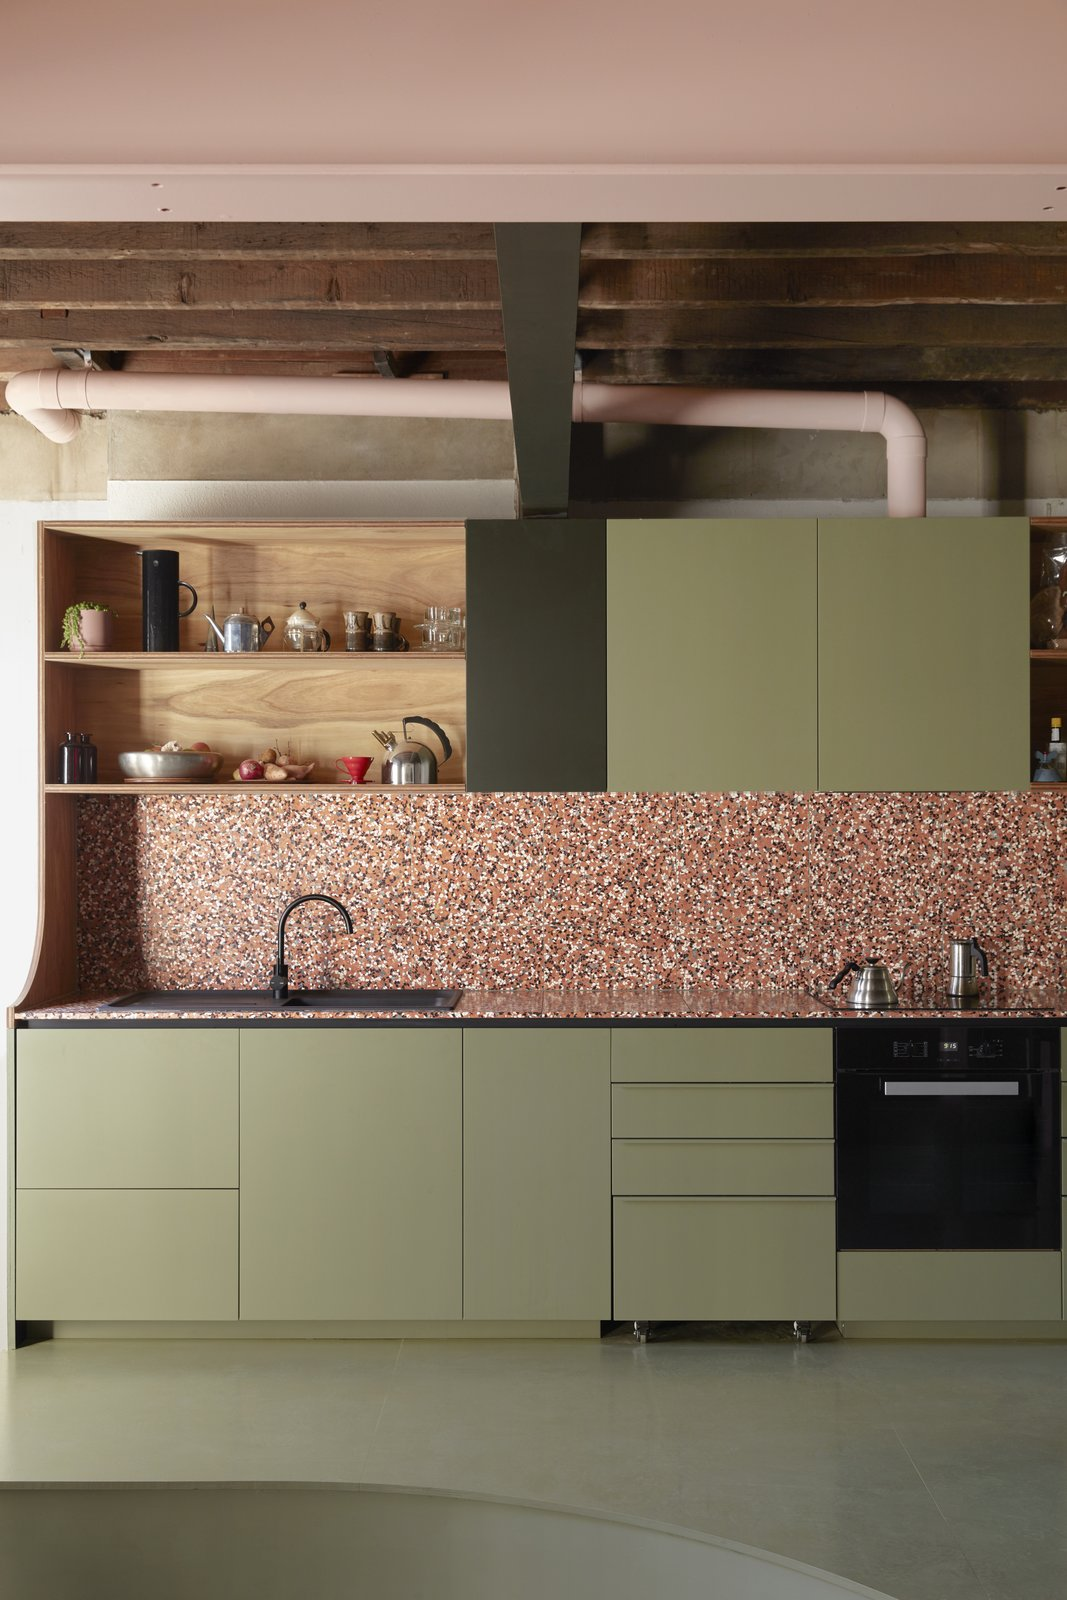 Hoa's House terrazzo and green kitchen